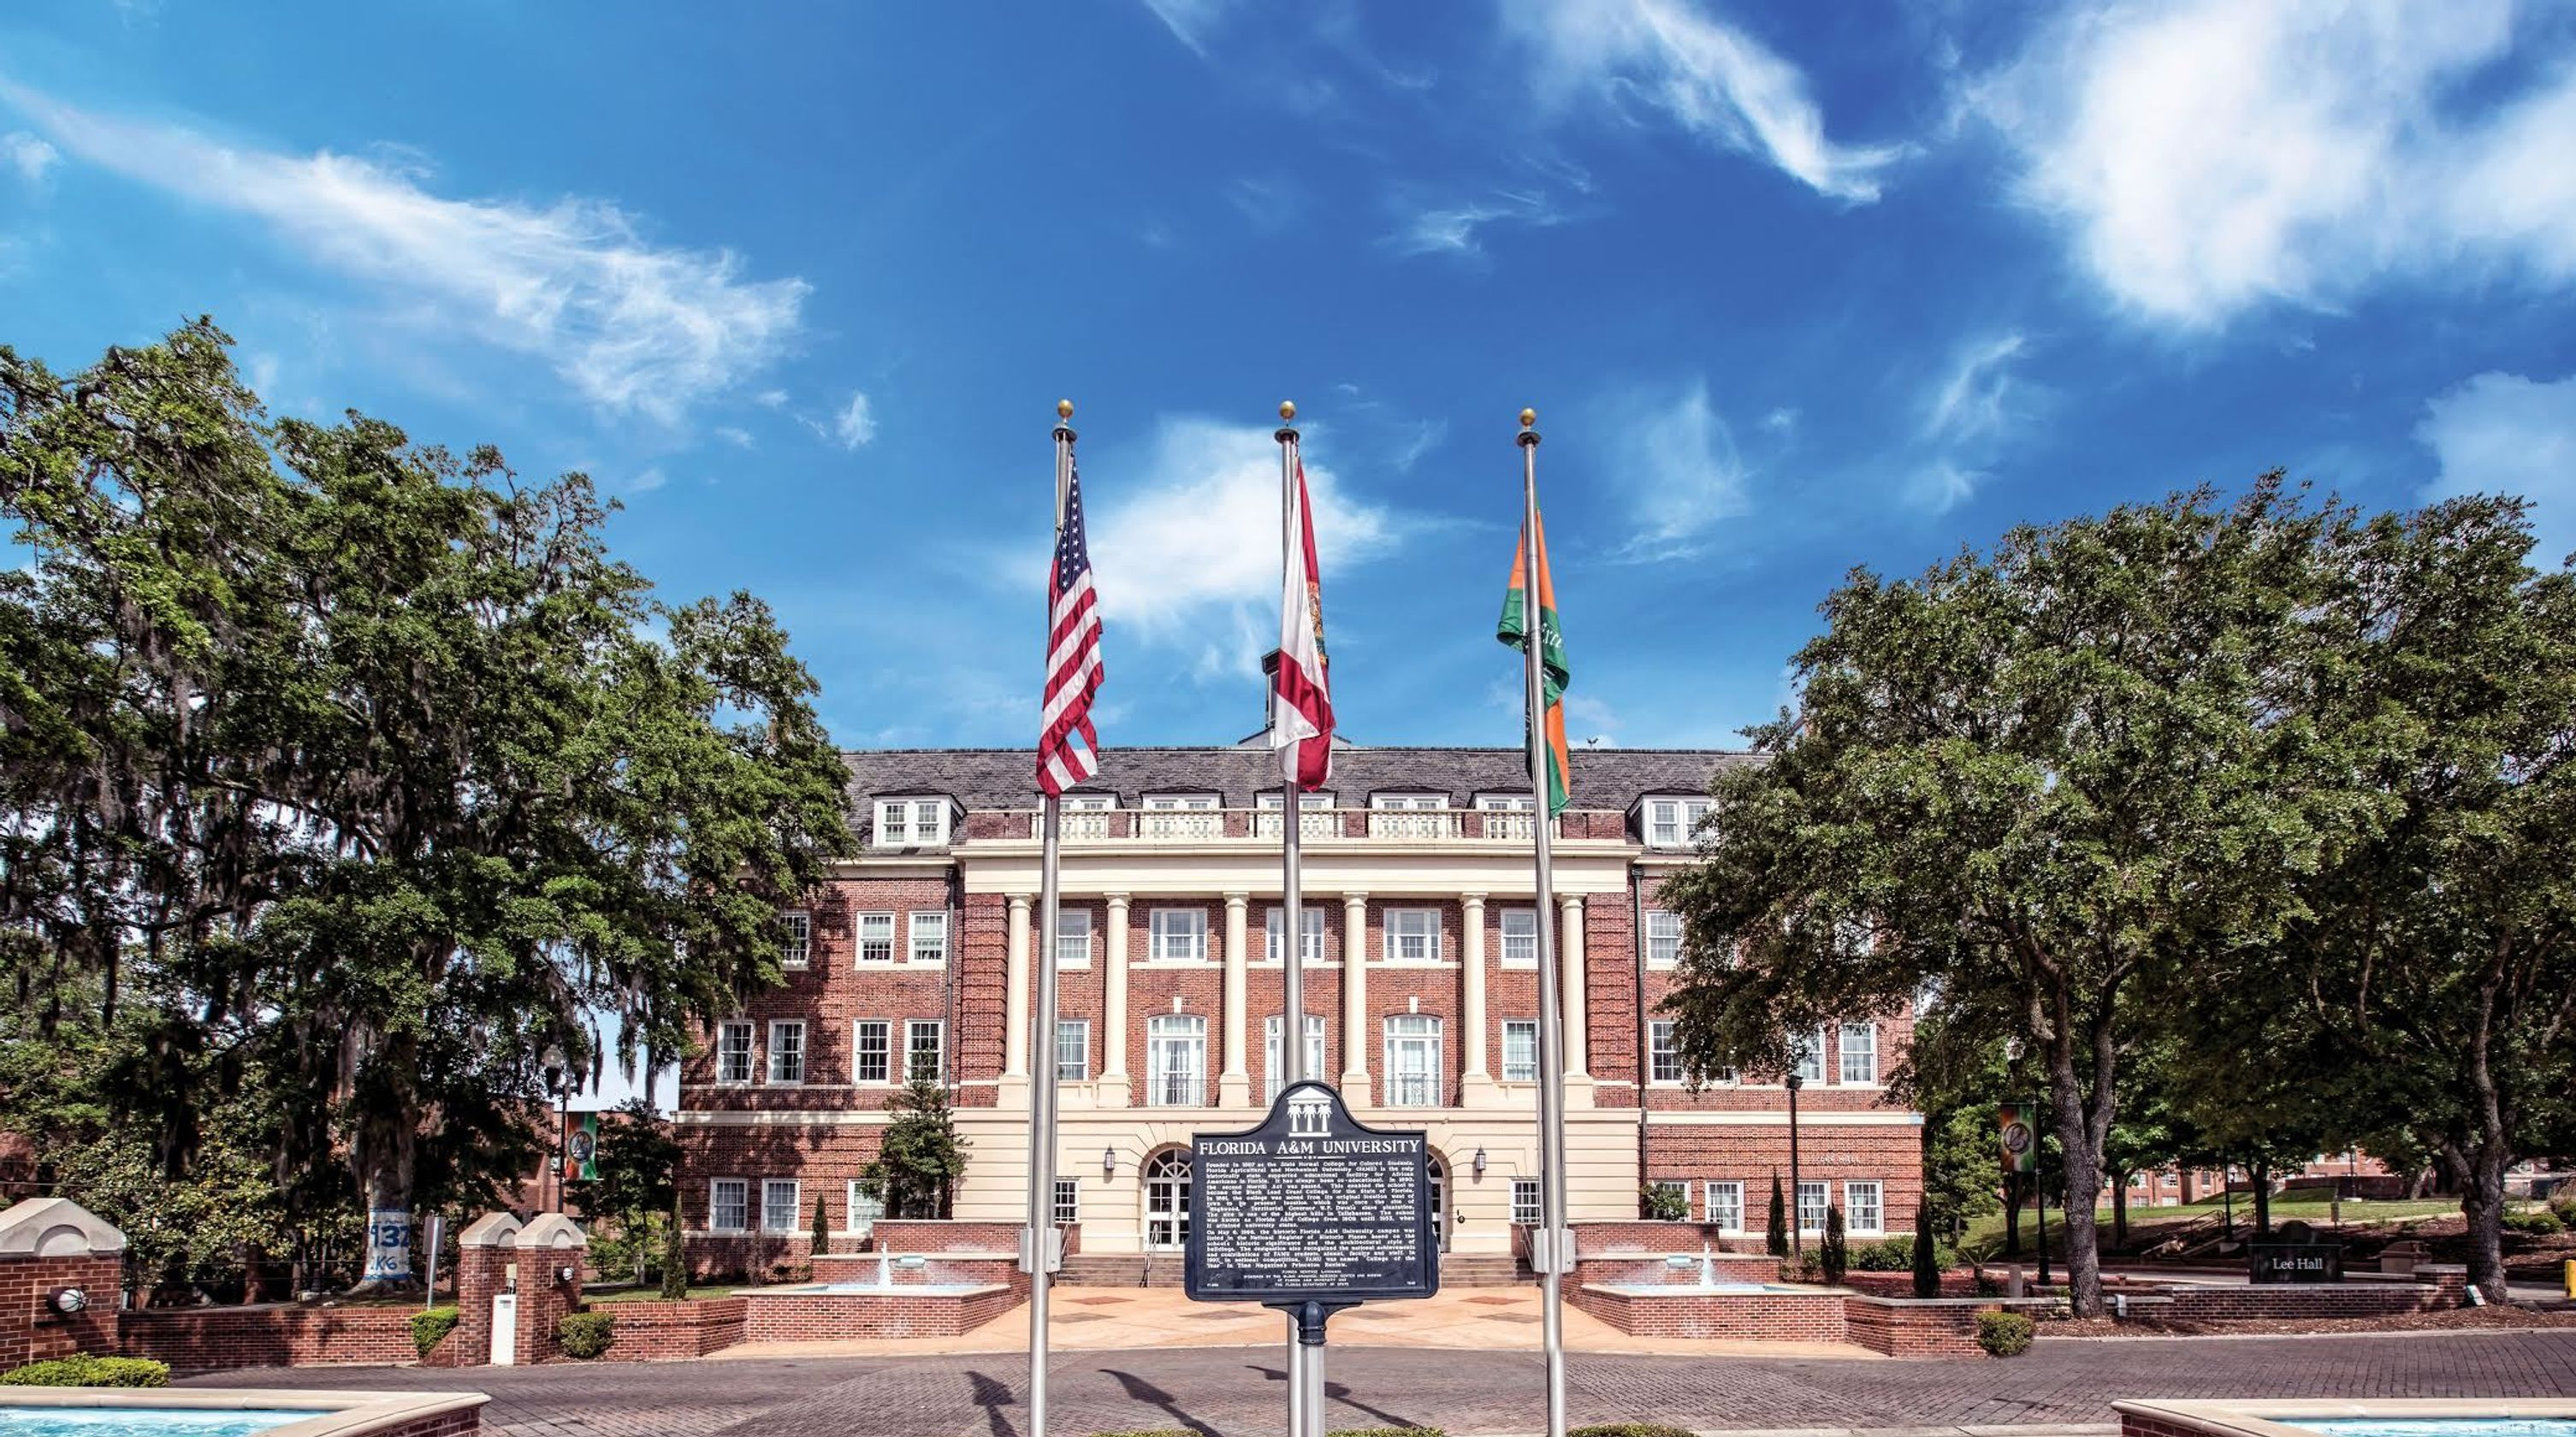 State auditors find issues with FAMU's oversight of purchase cards, at...